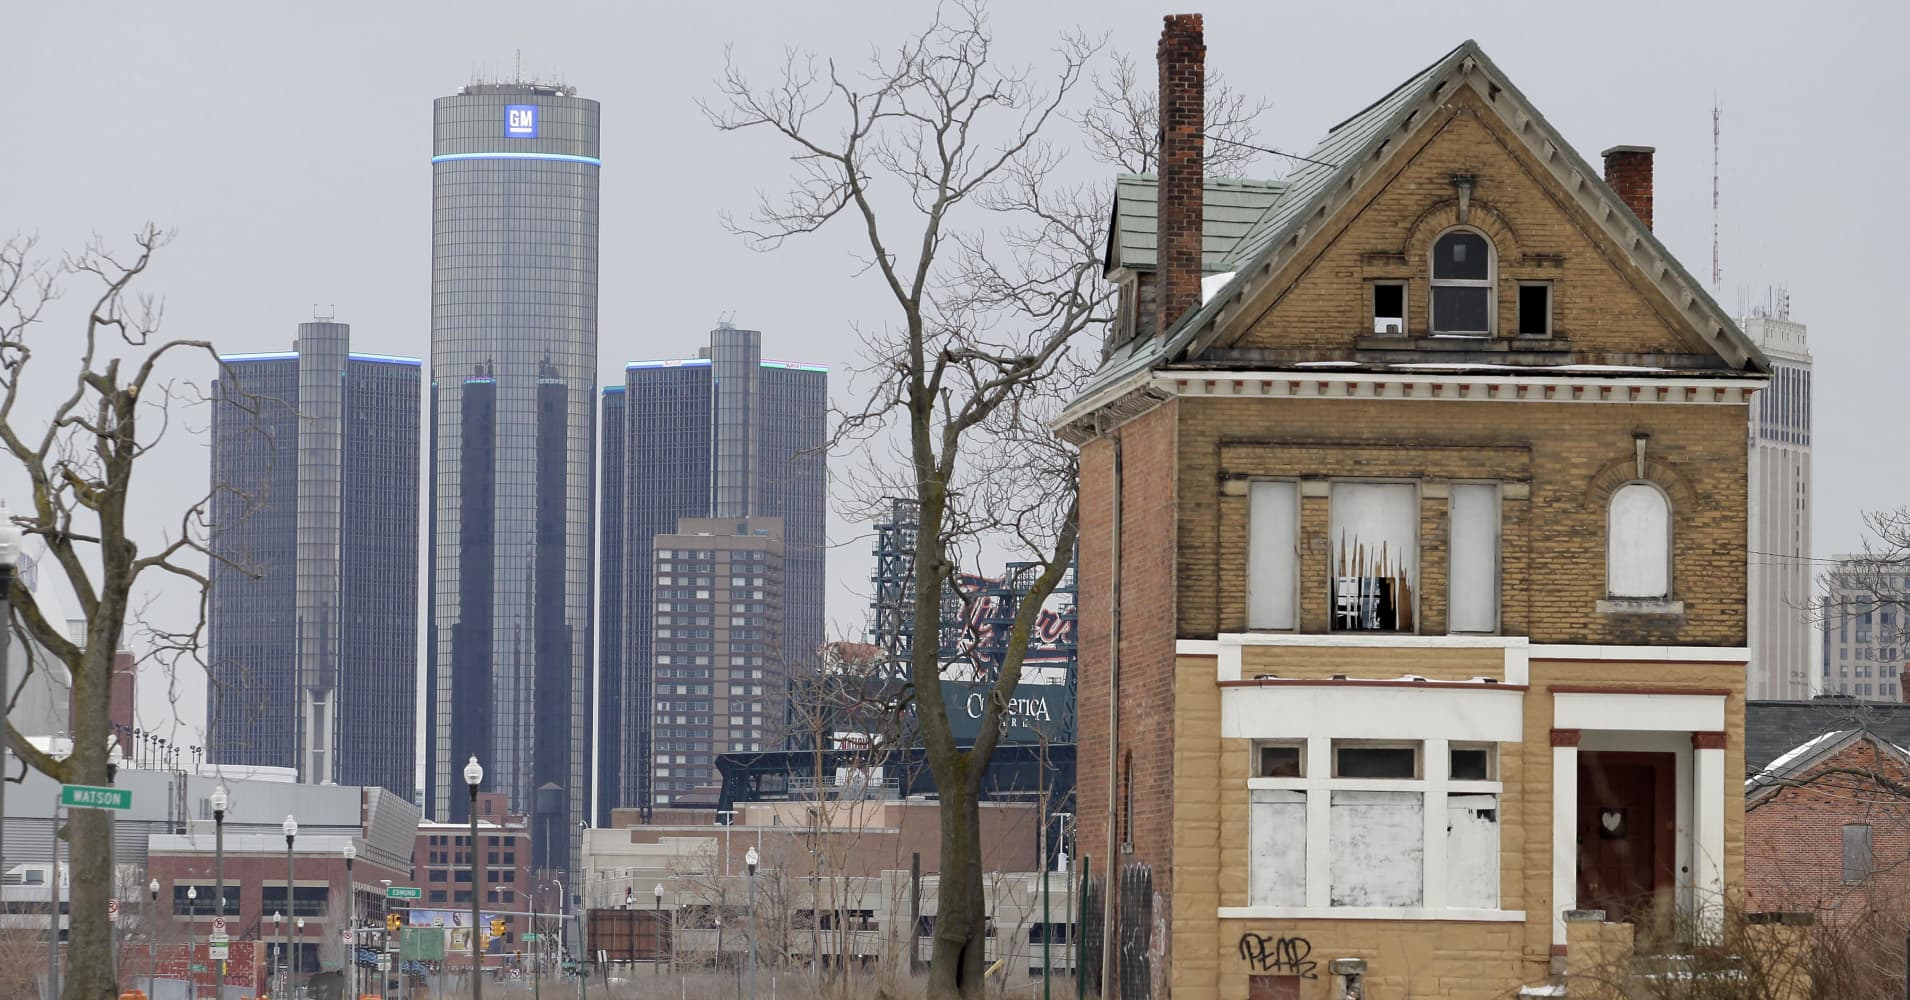 The city of Detroit has faced serious economic challenges in the past decade, with a shrinking population and tax basewhile trying to maintain essential services.